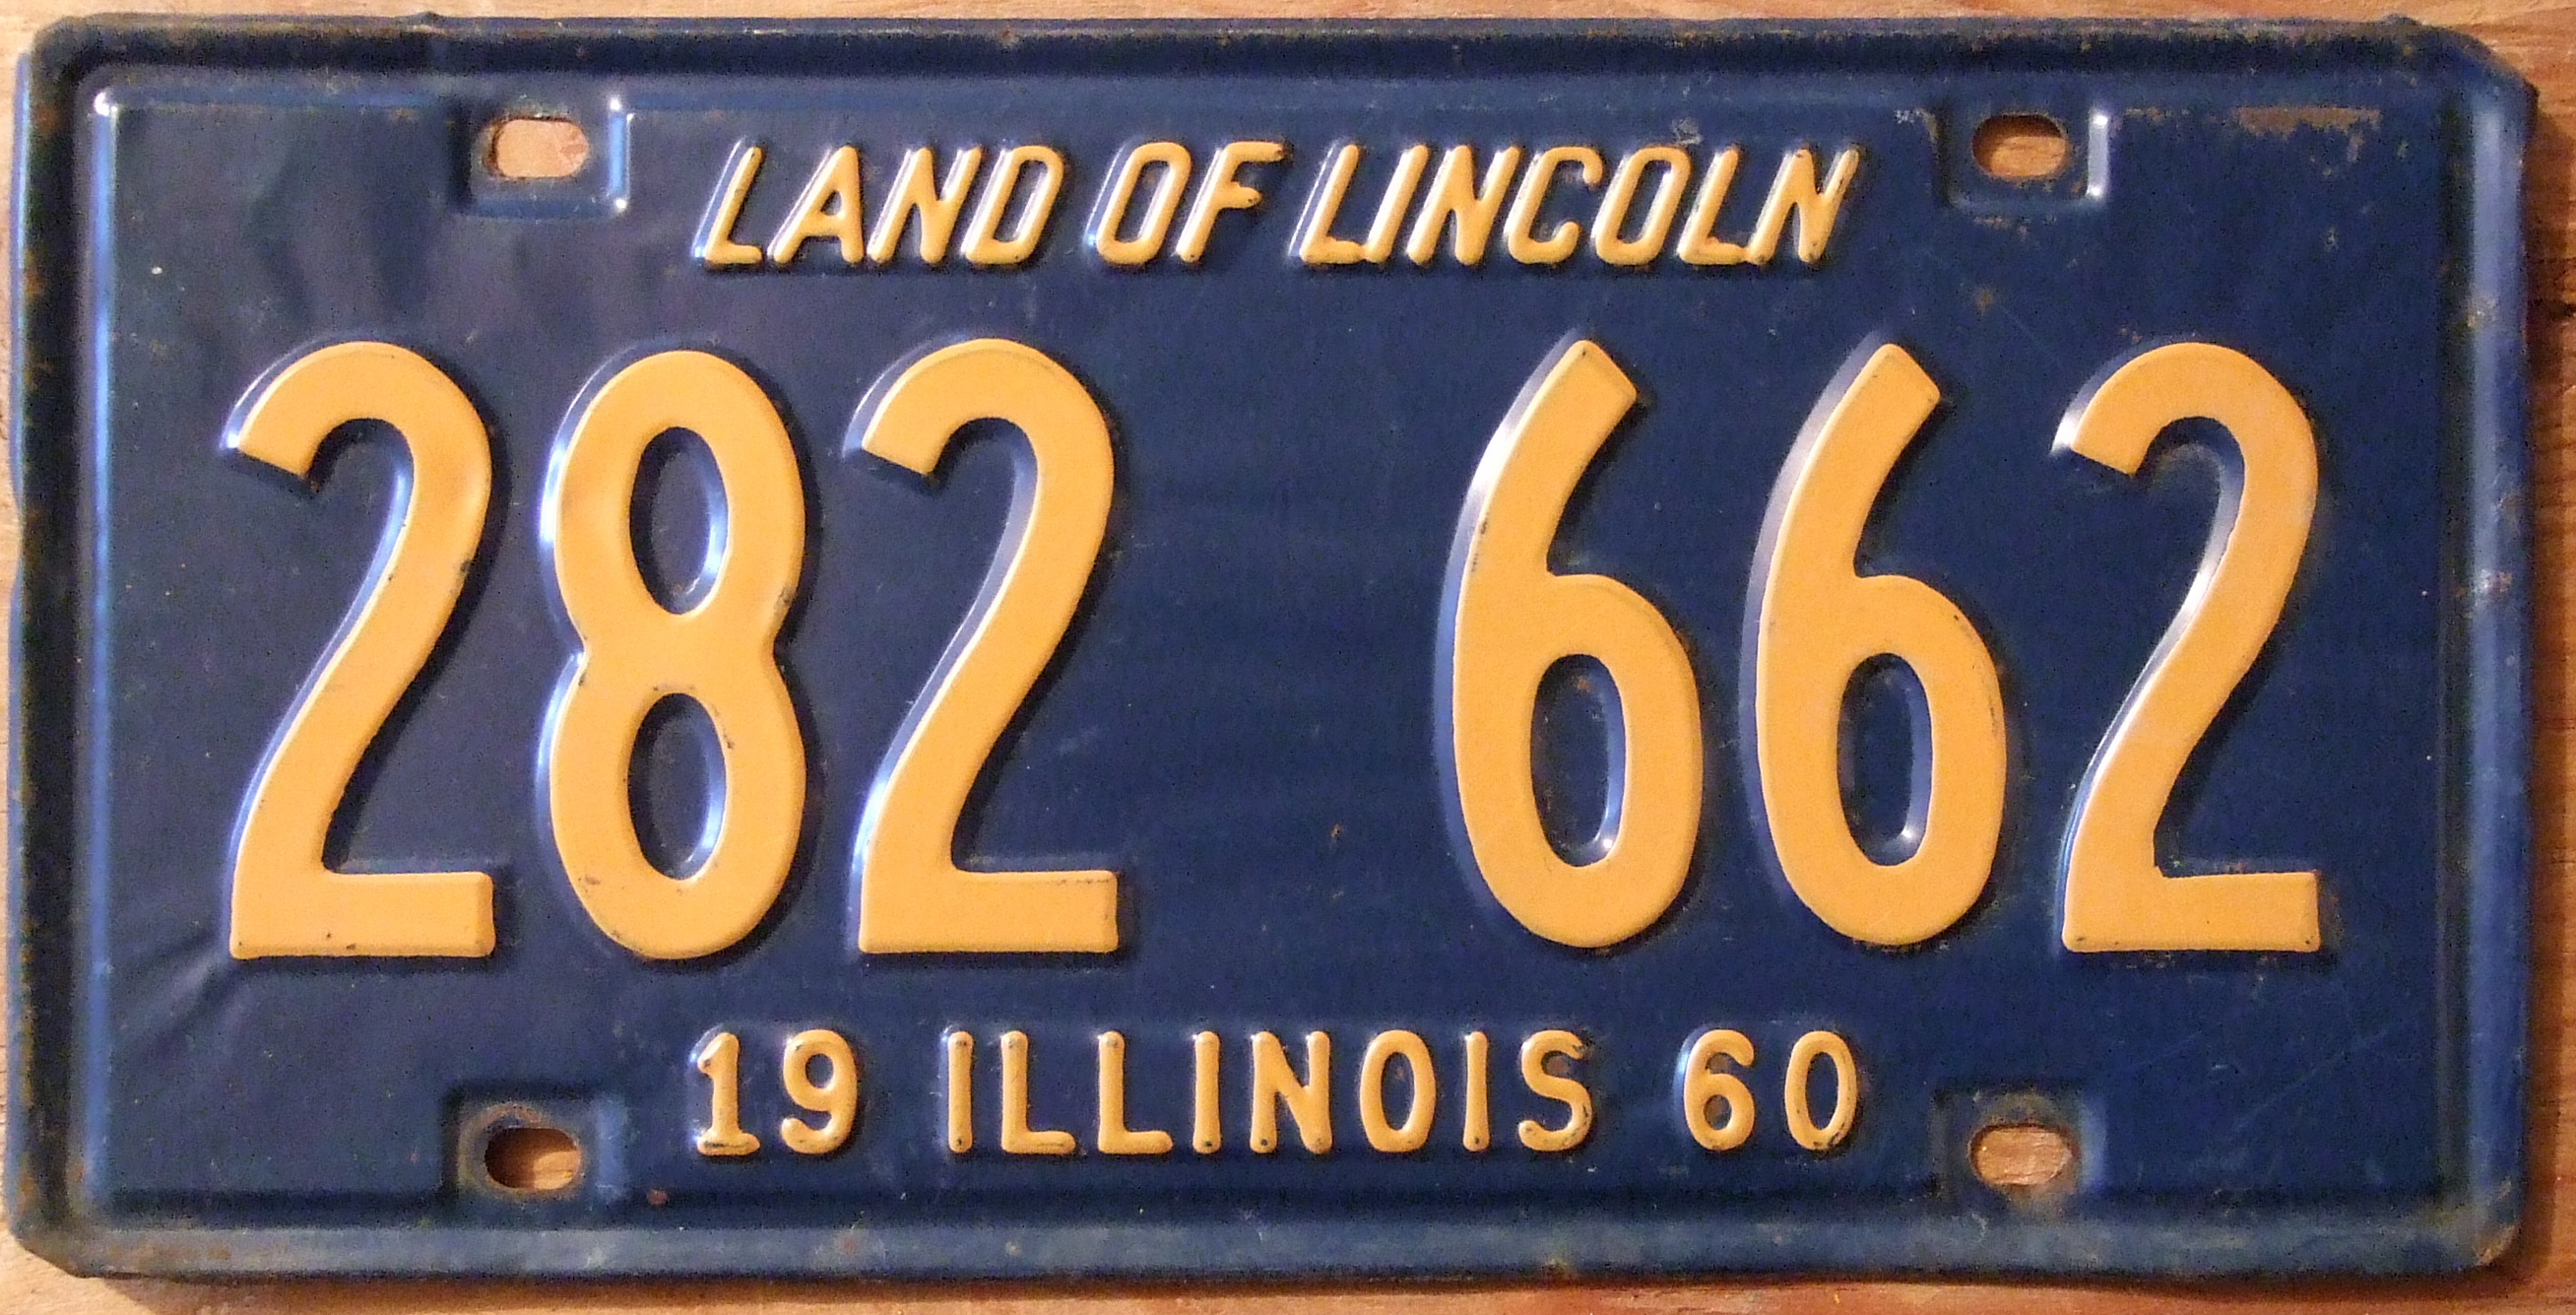 File:ILLINOIS 1960 LICENSE PLATE 282-662 - Flickr - woody1778a.jpg ...